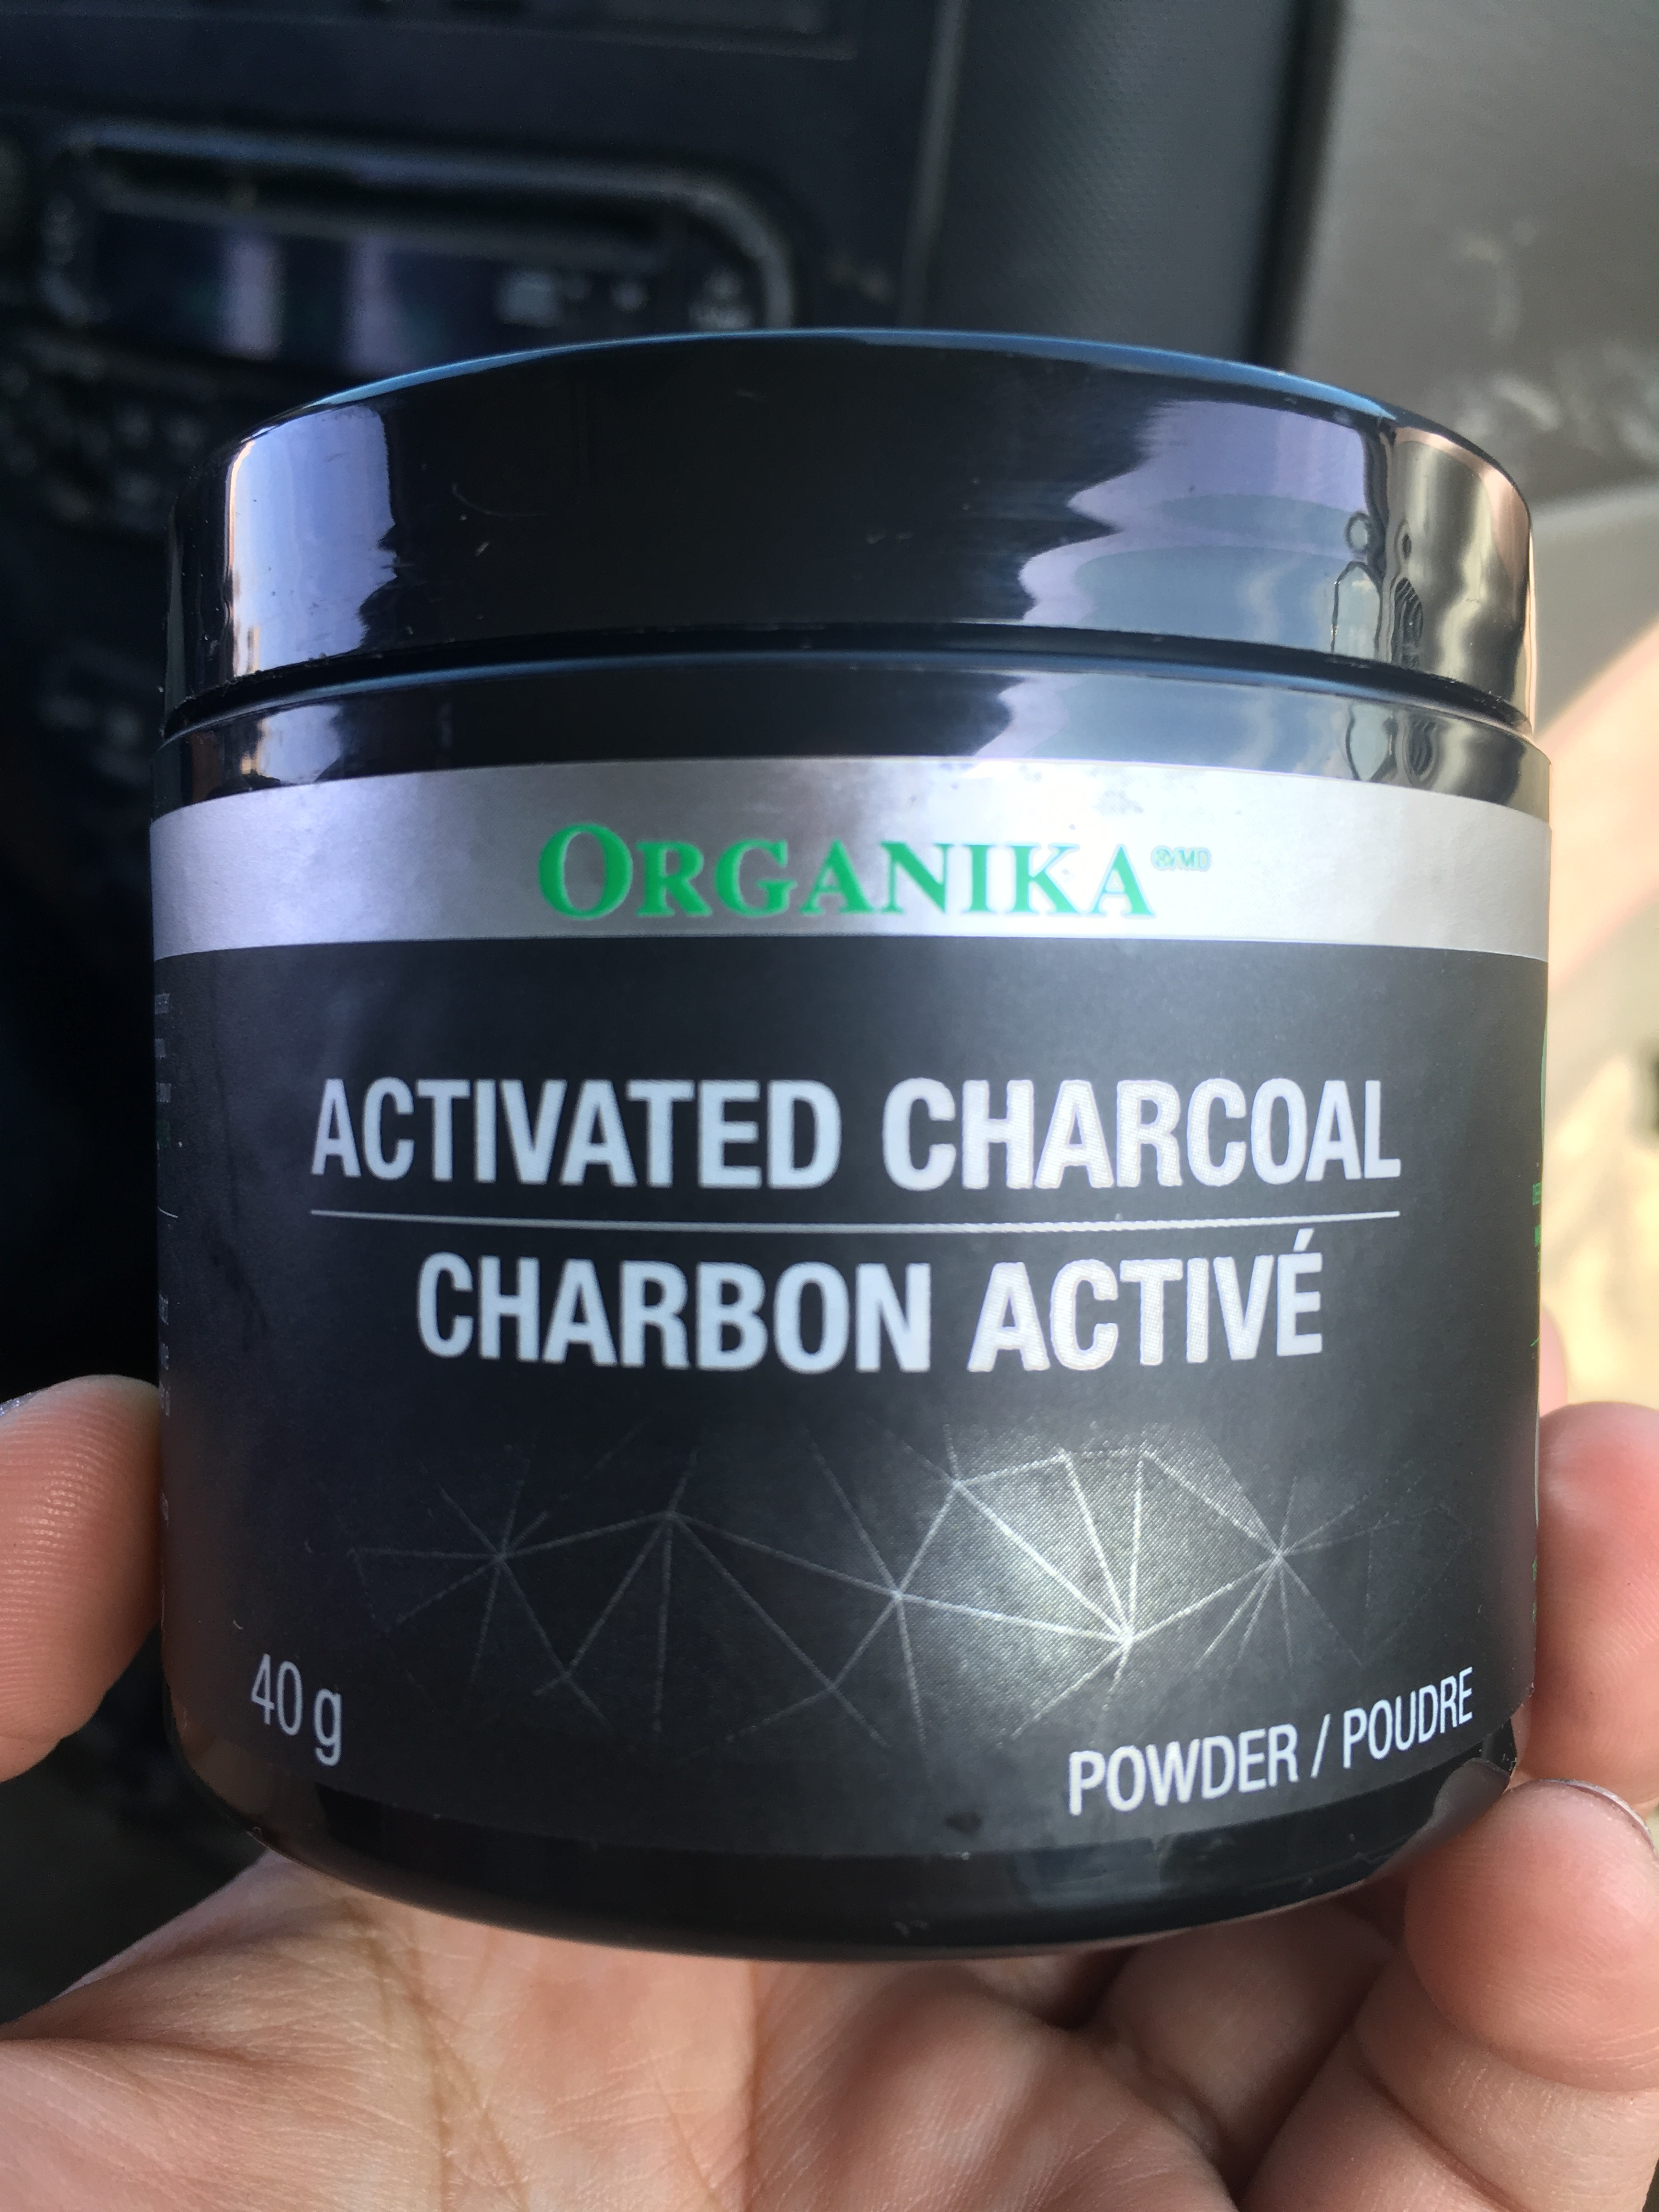 Organika Activated Charcoal Reviews In Teeth Whitening